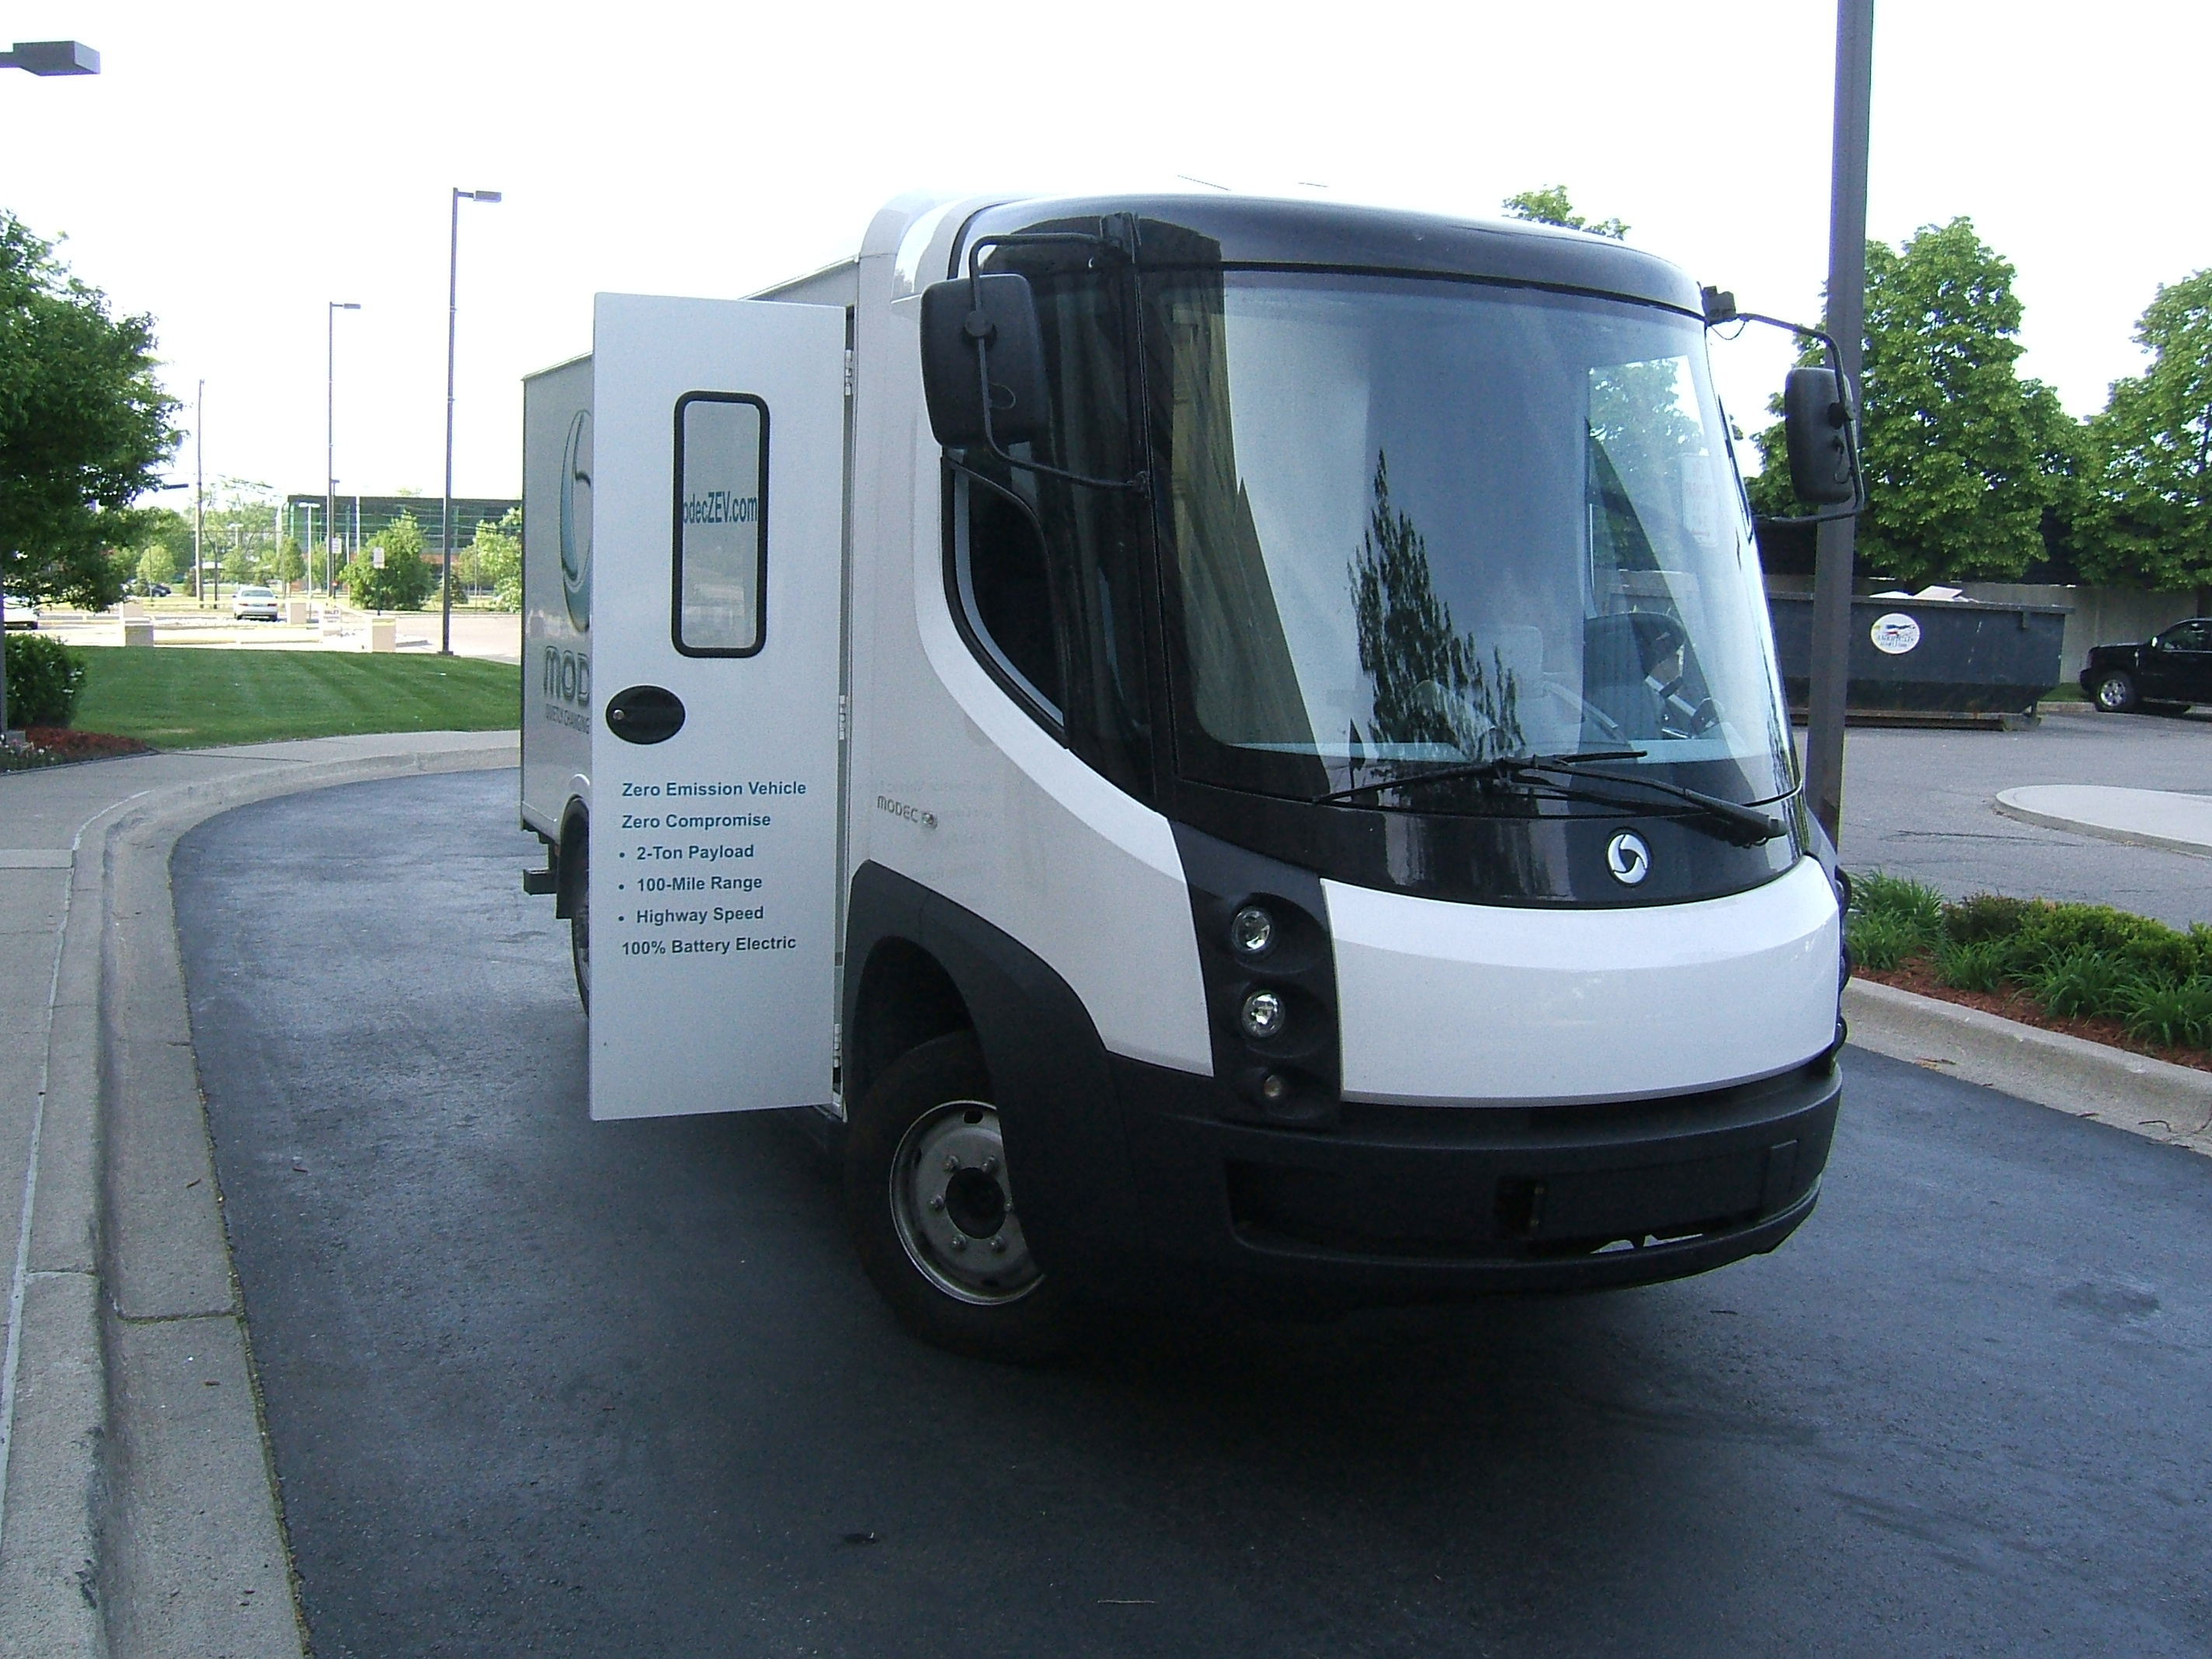 Minivan For Sale >> File:The Modec electric van.jpg - Wikimedia Commons